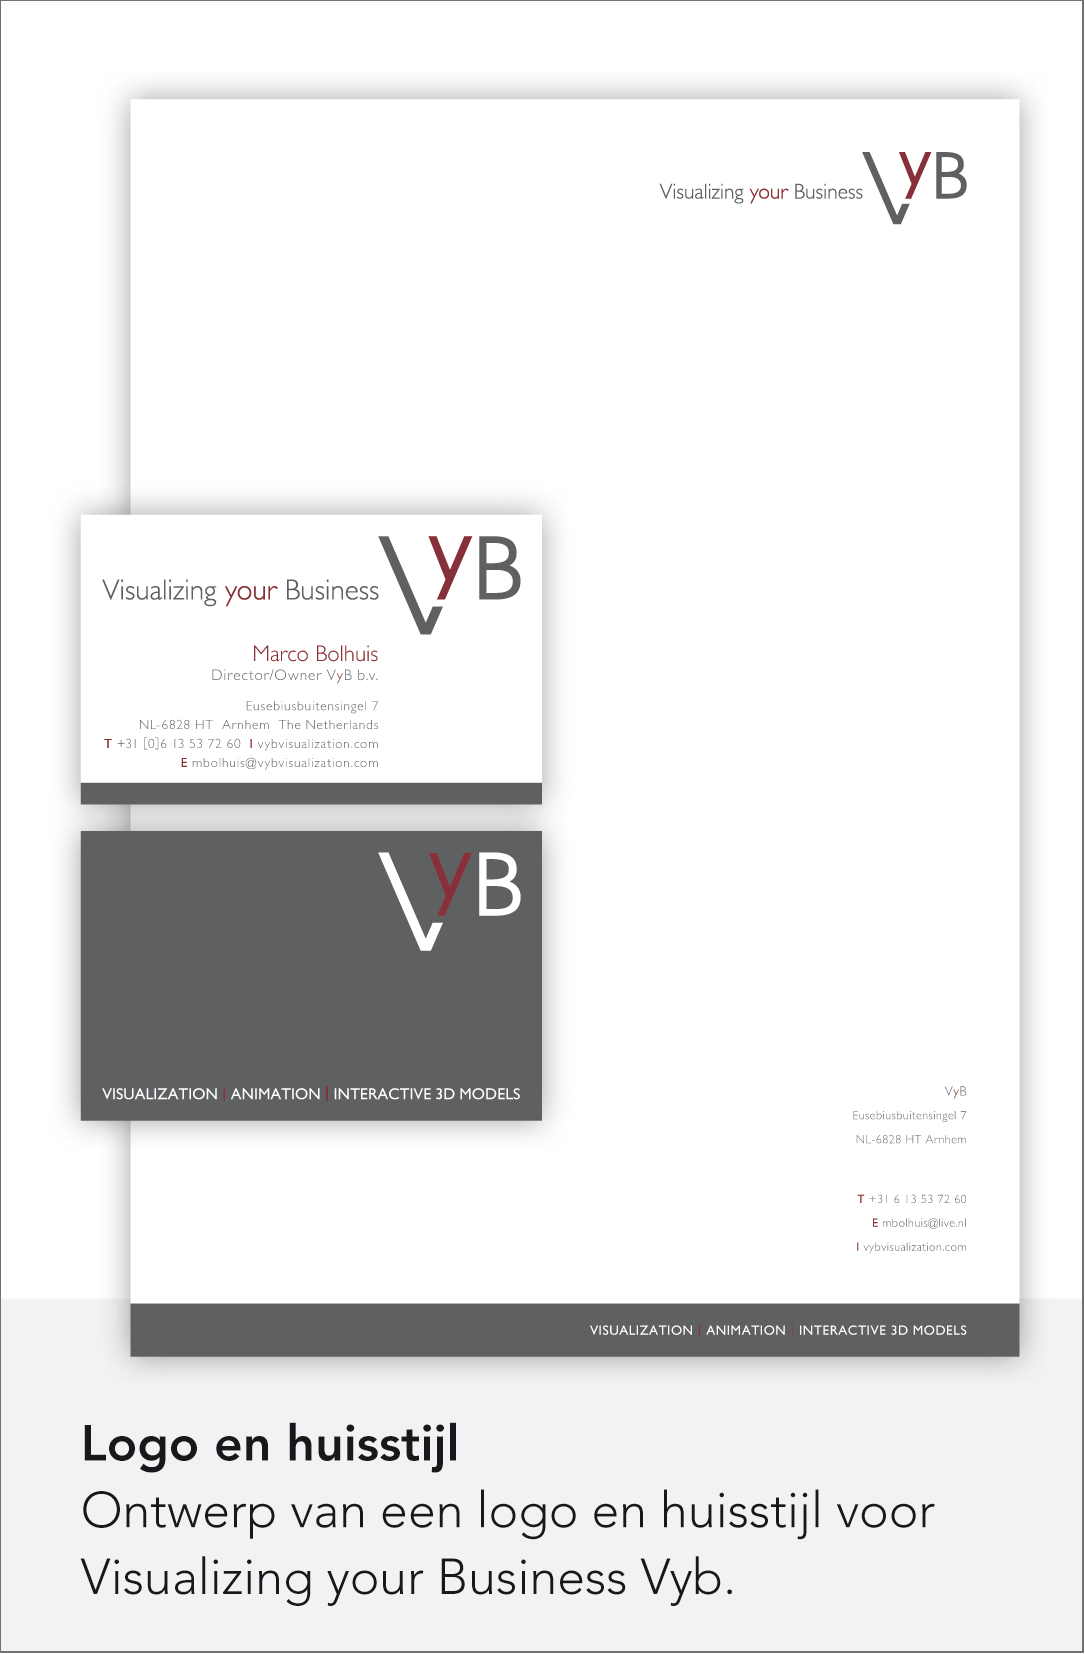 VyB Visualizing your Business - Huisstijl